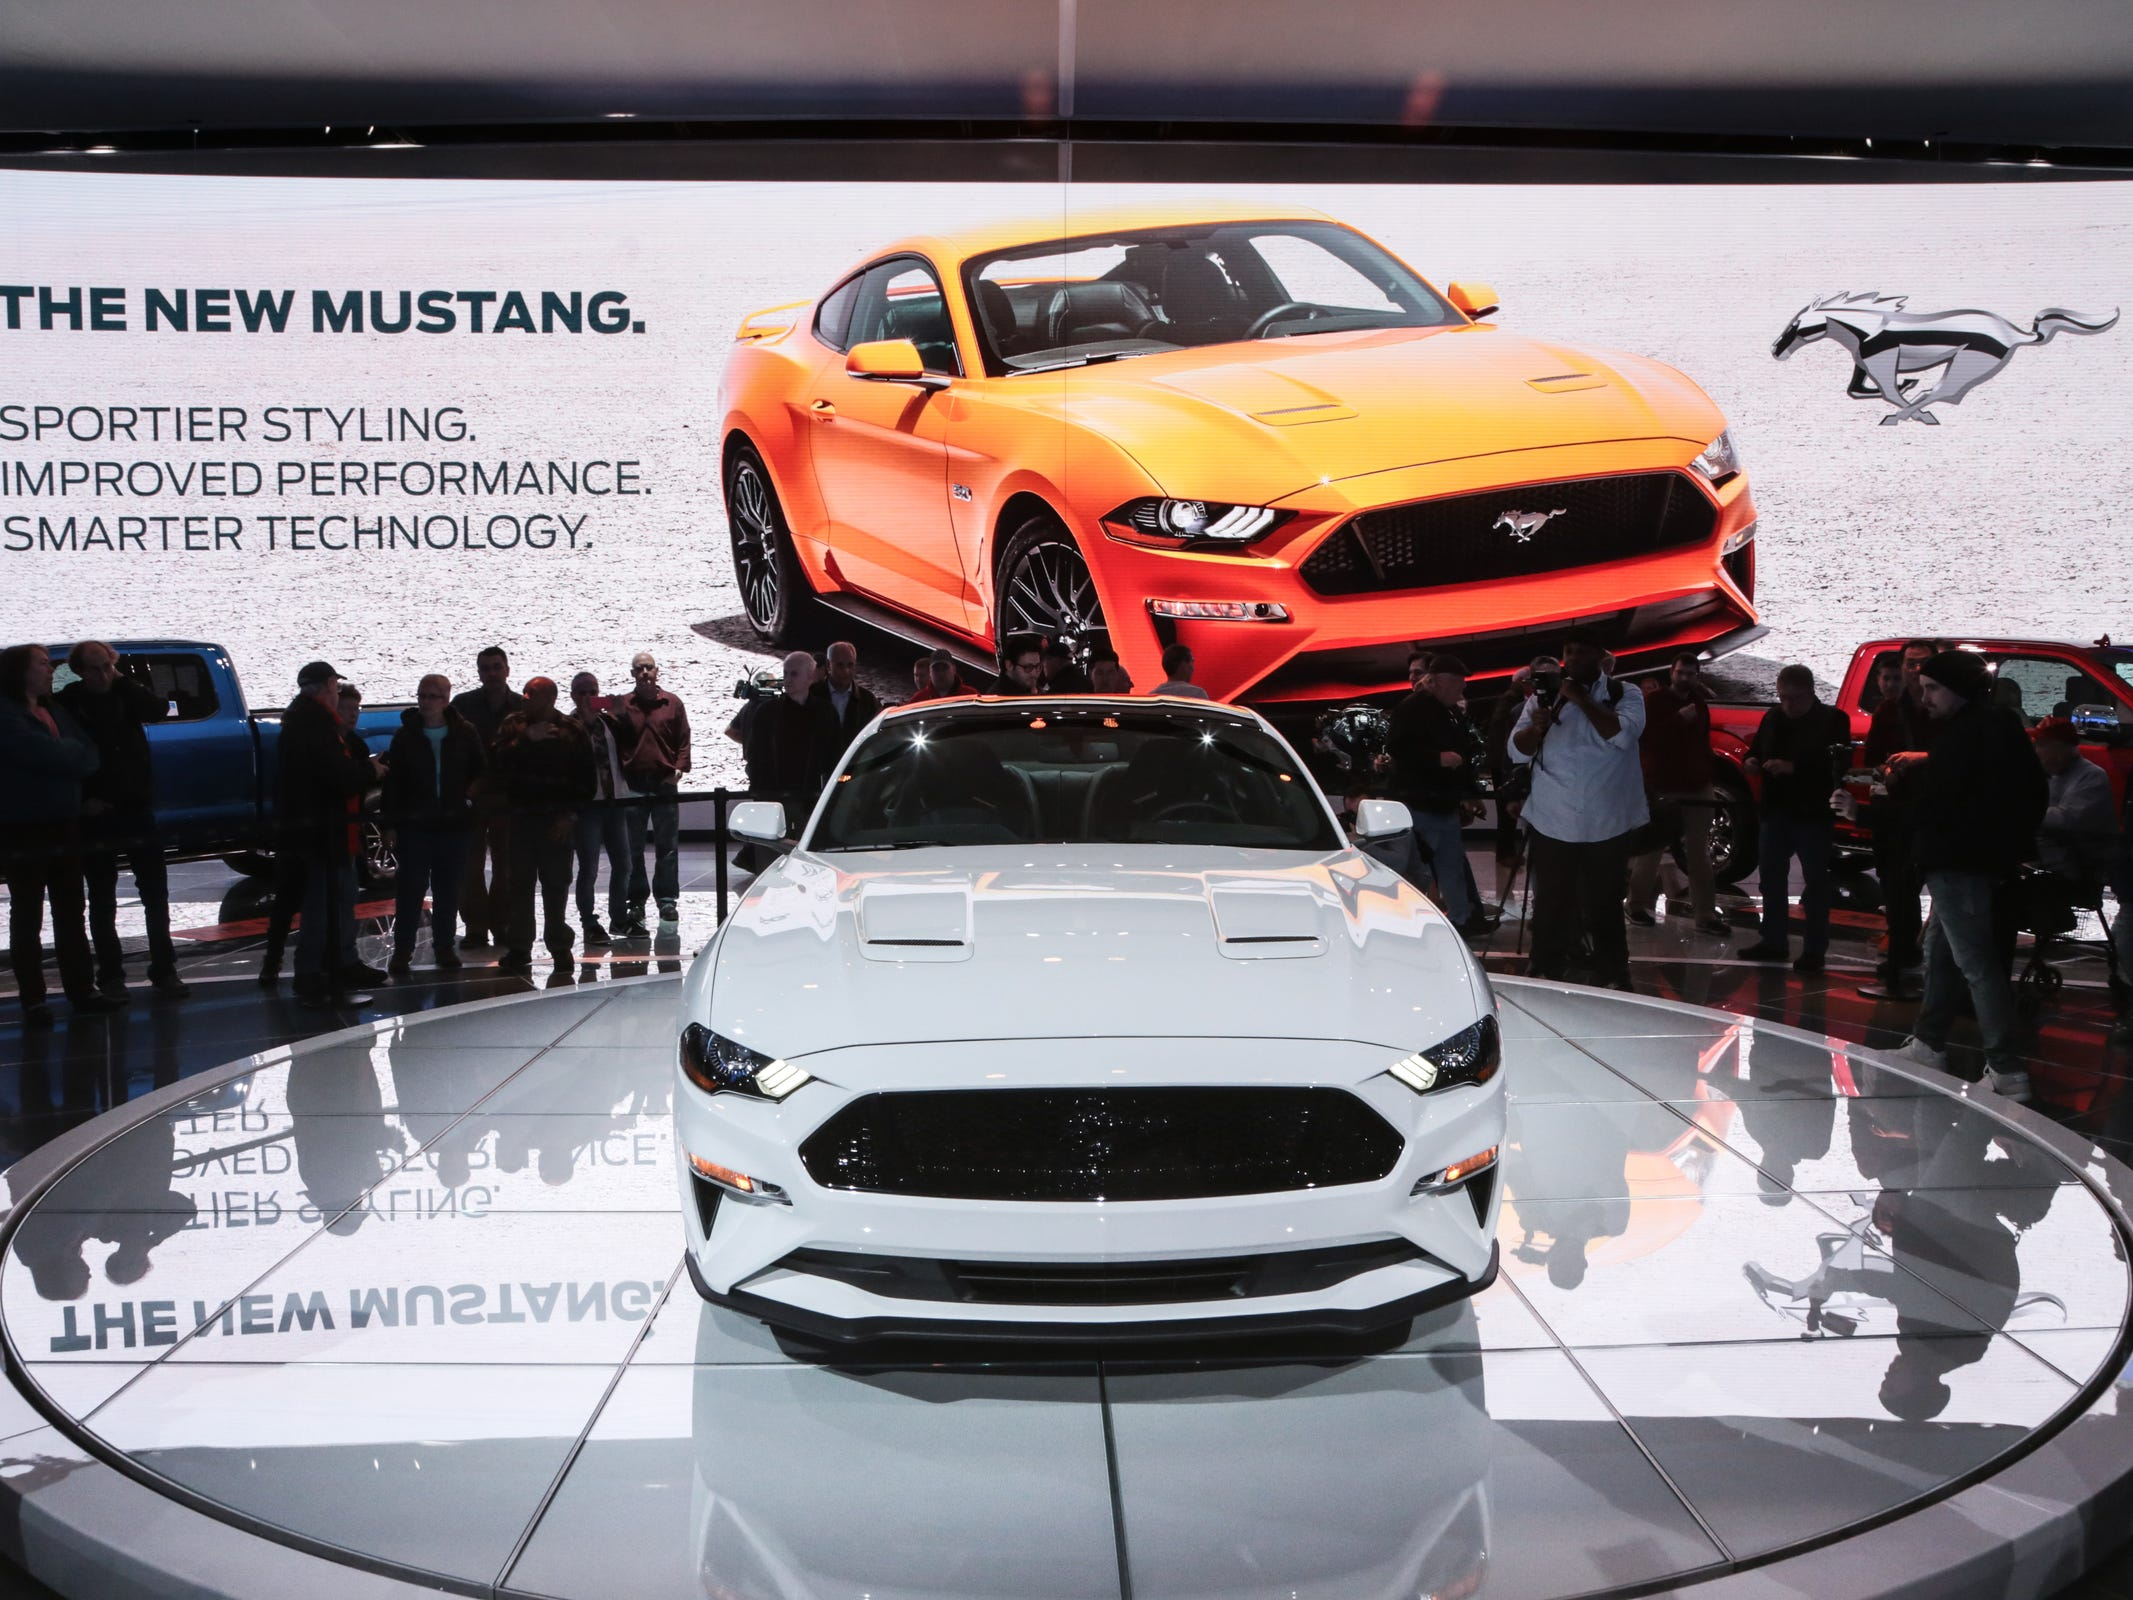 A 2018 Ford Mustang GT 5.0 with a new front end design is shown at the Ford exhibit during the 2017 North American International Auto Show at Cobo Center in Detroit in January 2017.